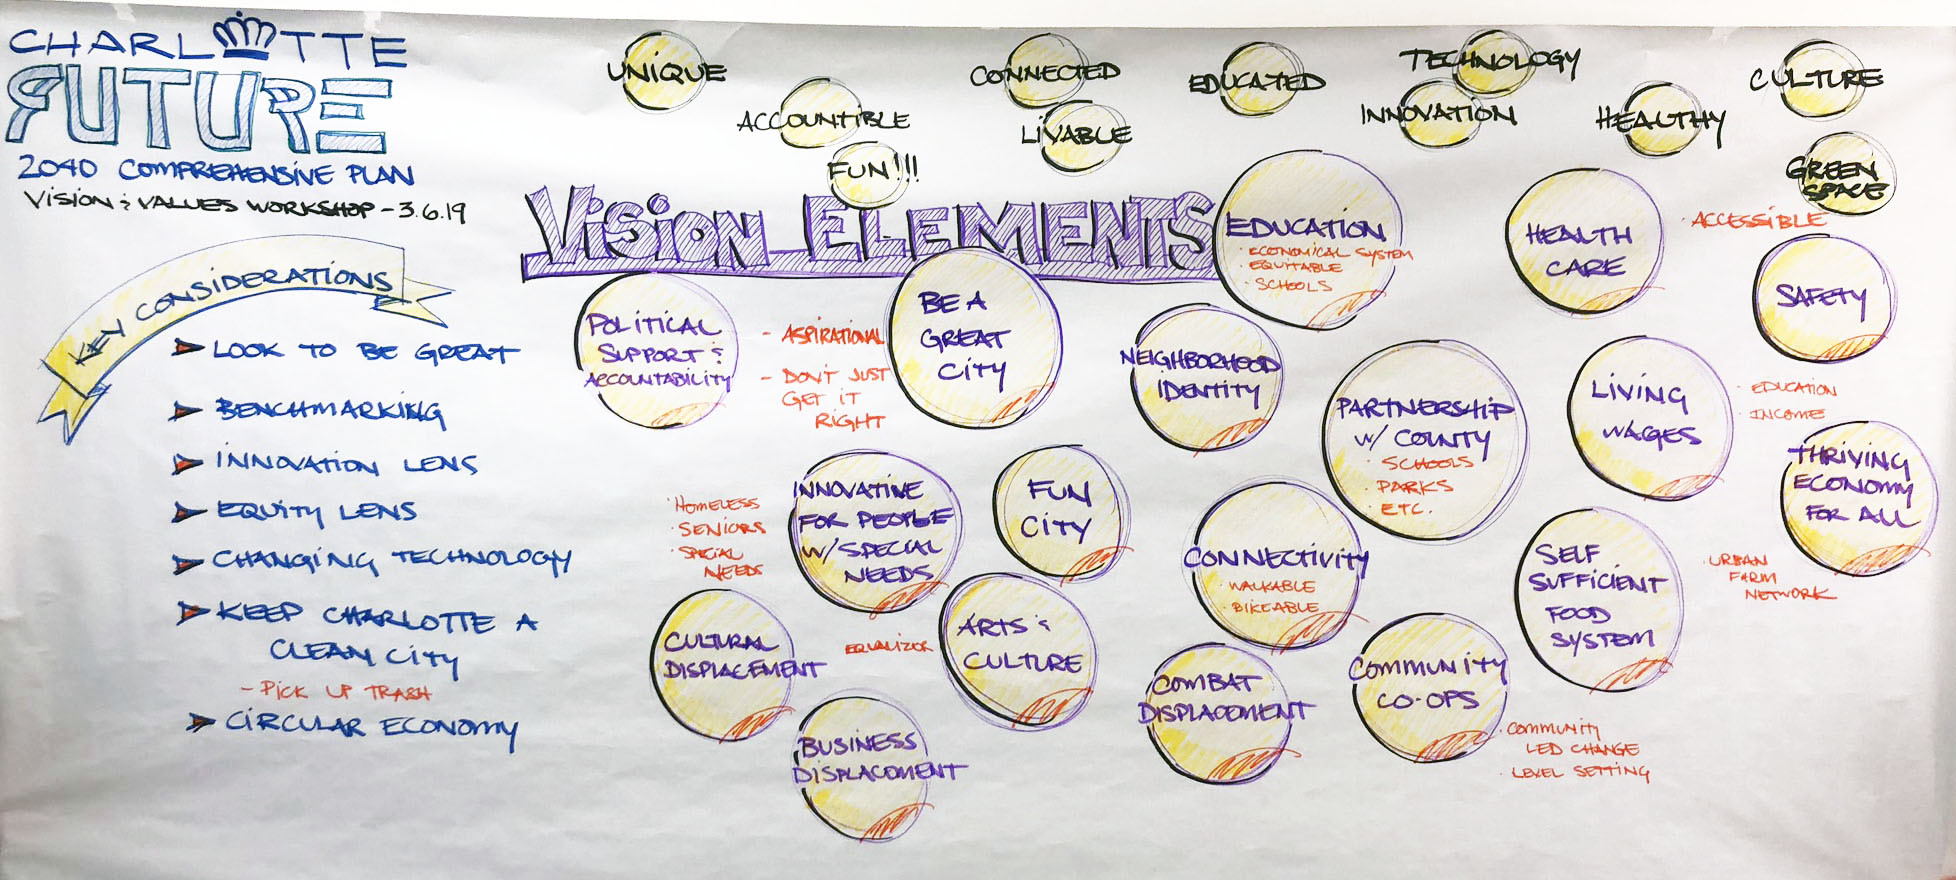 Image of the hand notes from the vision and values workshop on March 6th